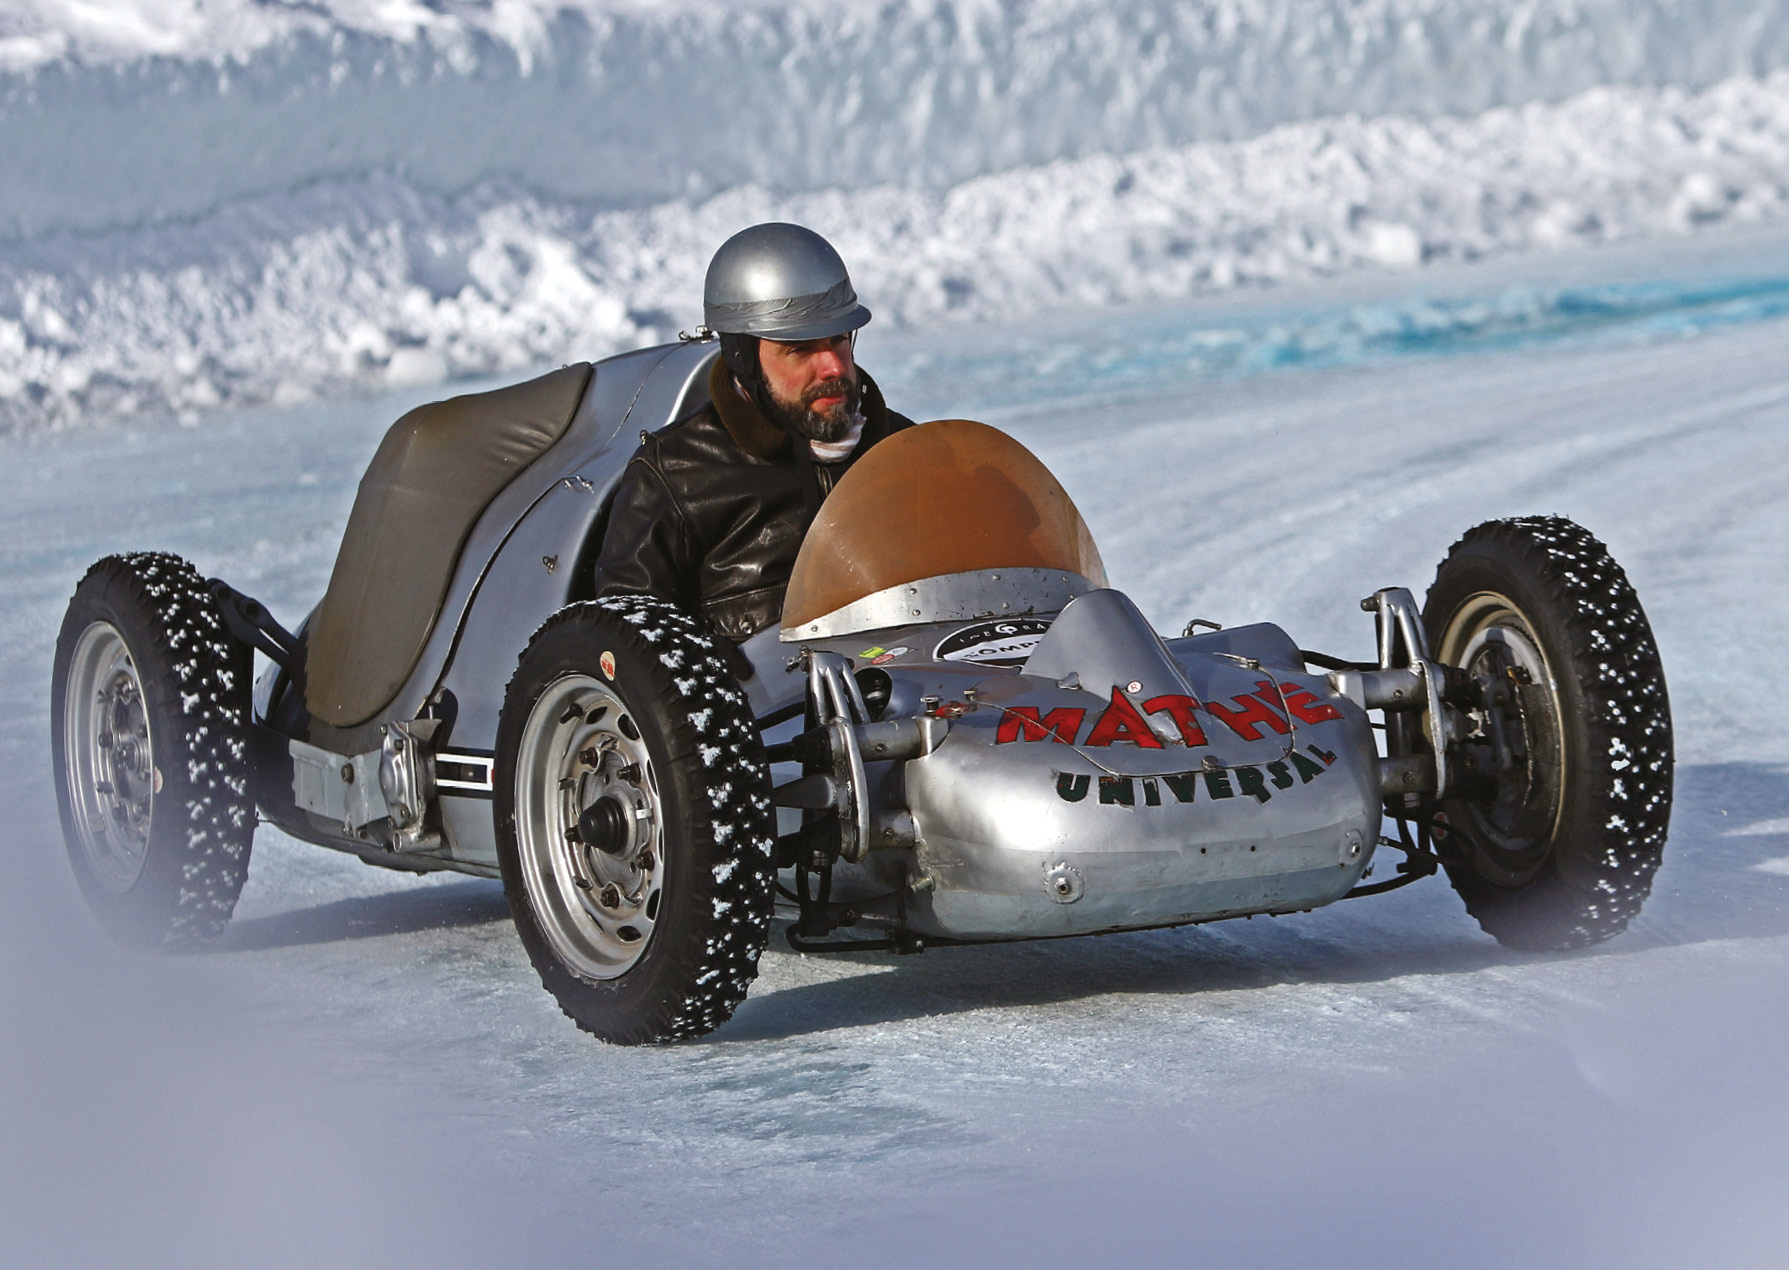 An ice-racing legend in Zell, the Fetzenflieger is a fusion of VW parts with a Porsche engine